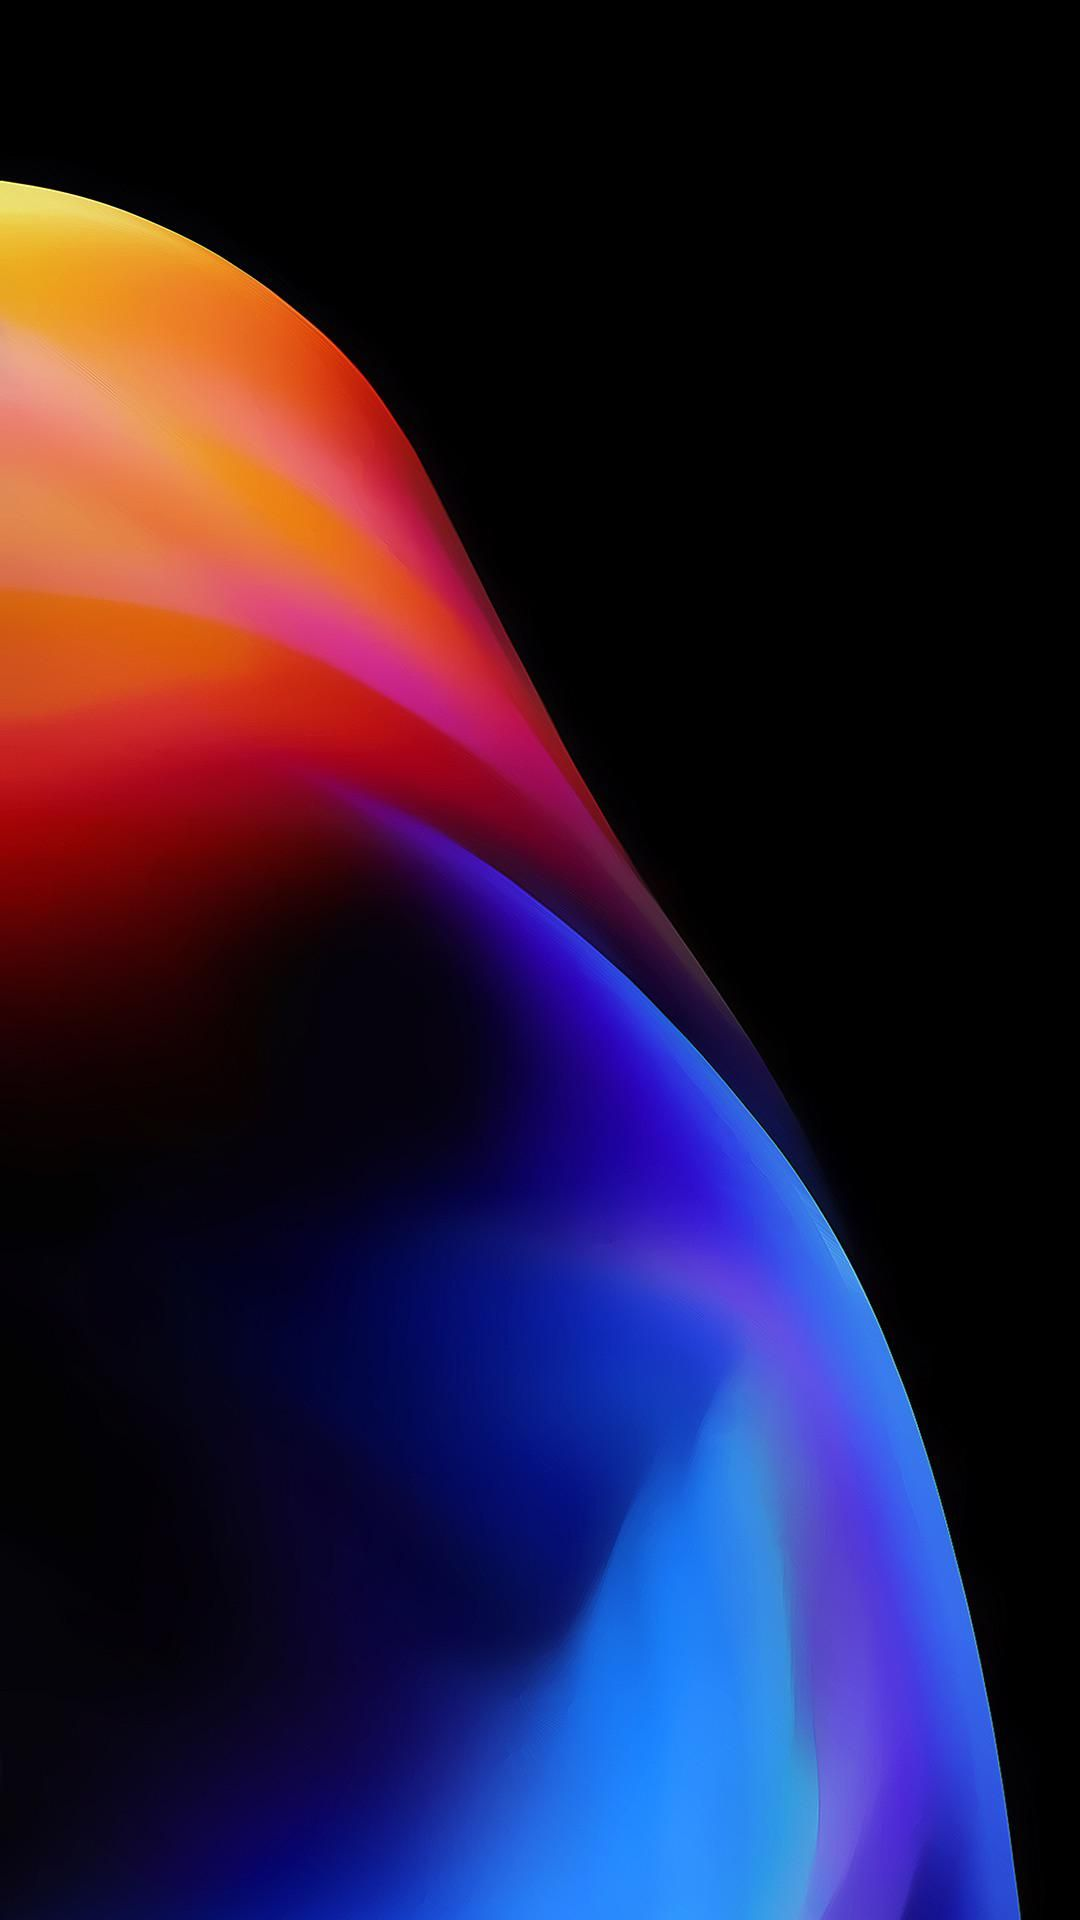 Iphone Stock Oled Wallpaper Iphone Wallpaper Dimensions Iphone 8 Wallpaper Hd Apple Wallpaper Iphone